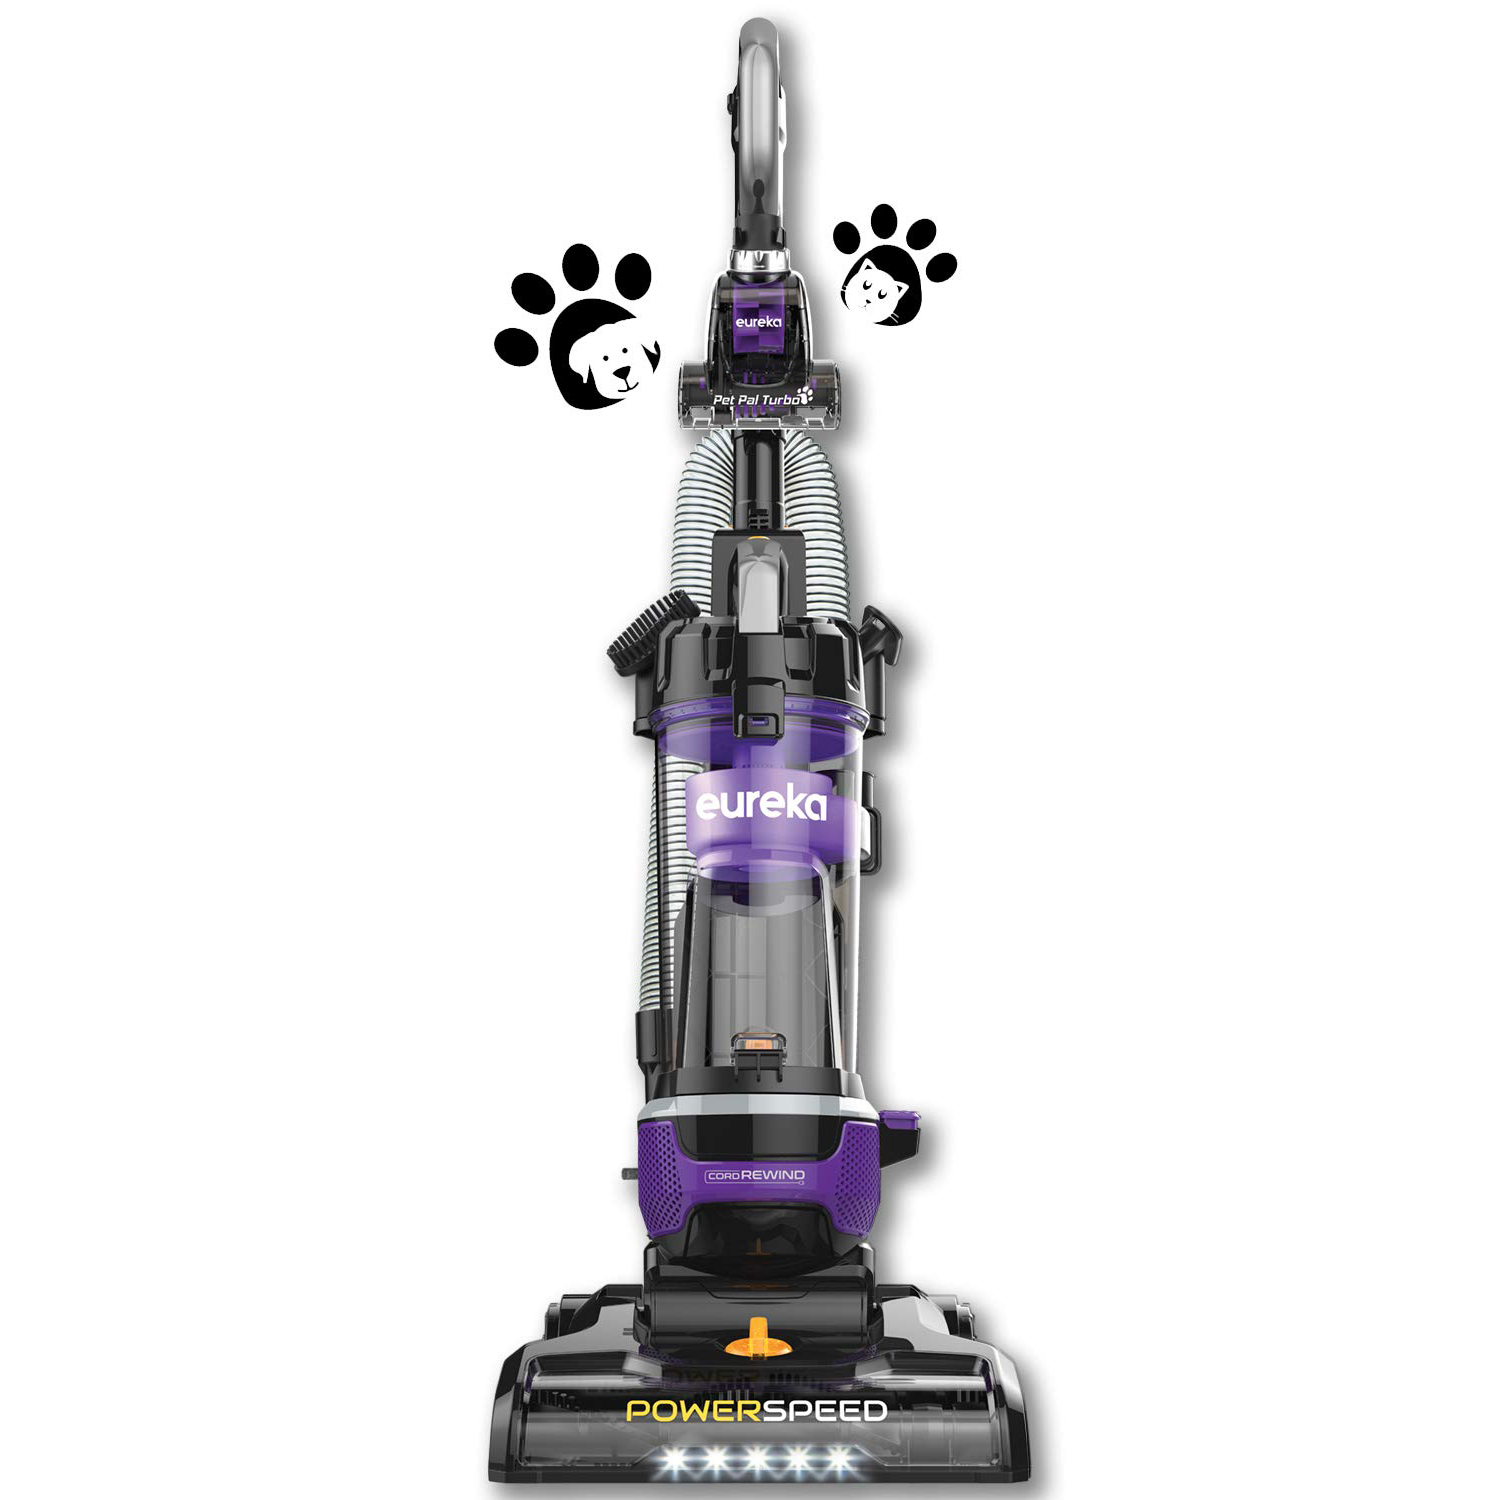 Best Vacuum for Pet Hair: Eureka NEU202 Bagless Upright Vacuum